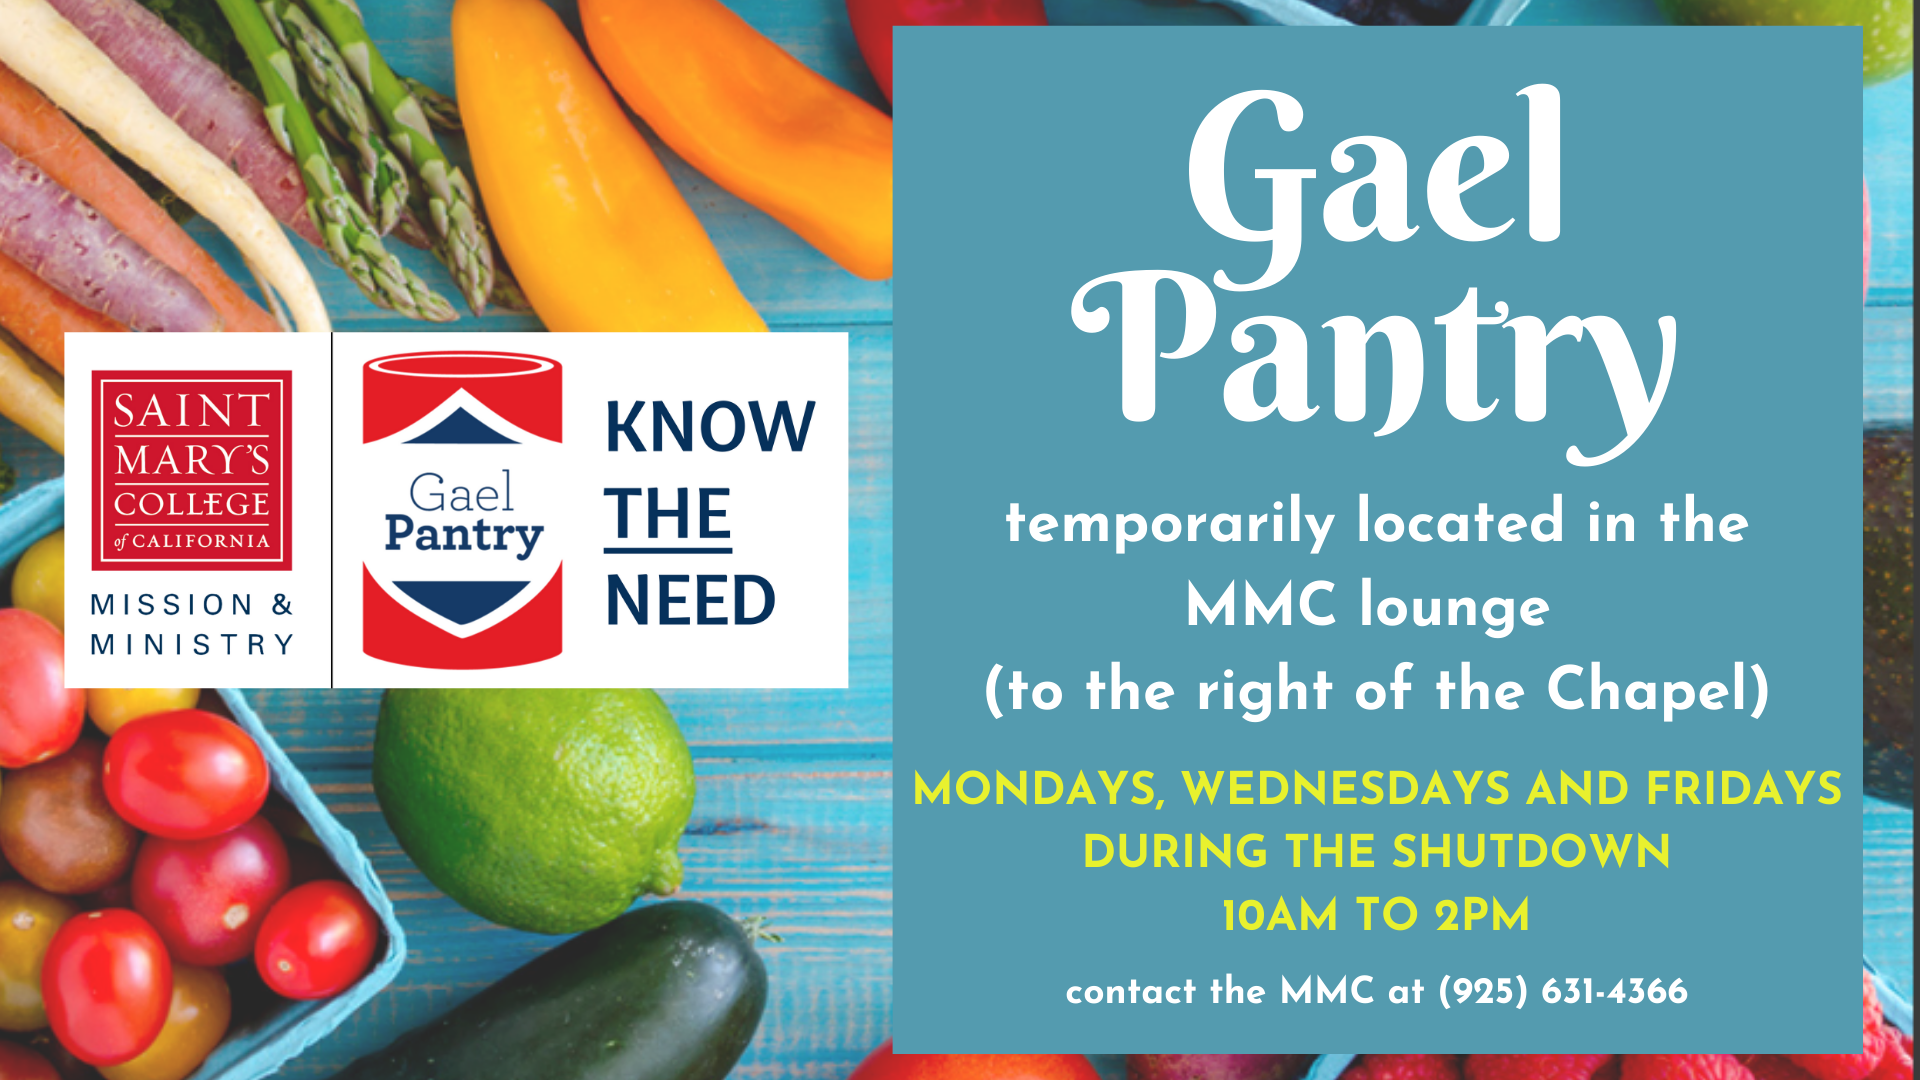 GaelPantry temporary hours, COVID-19